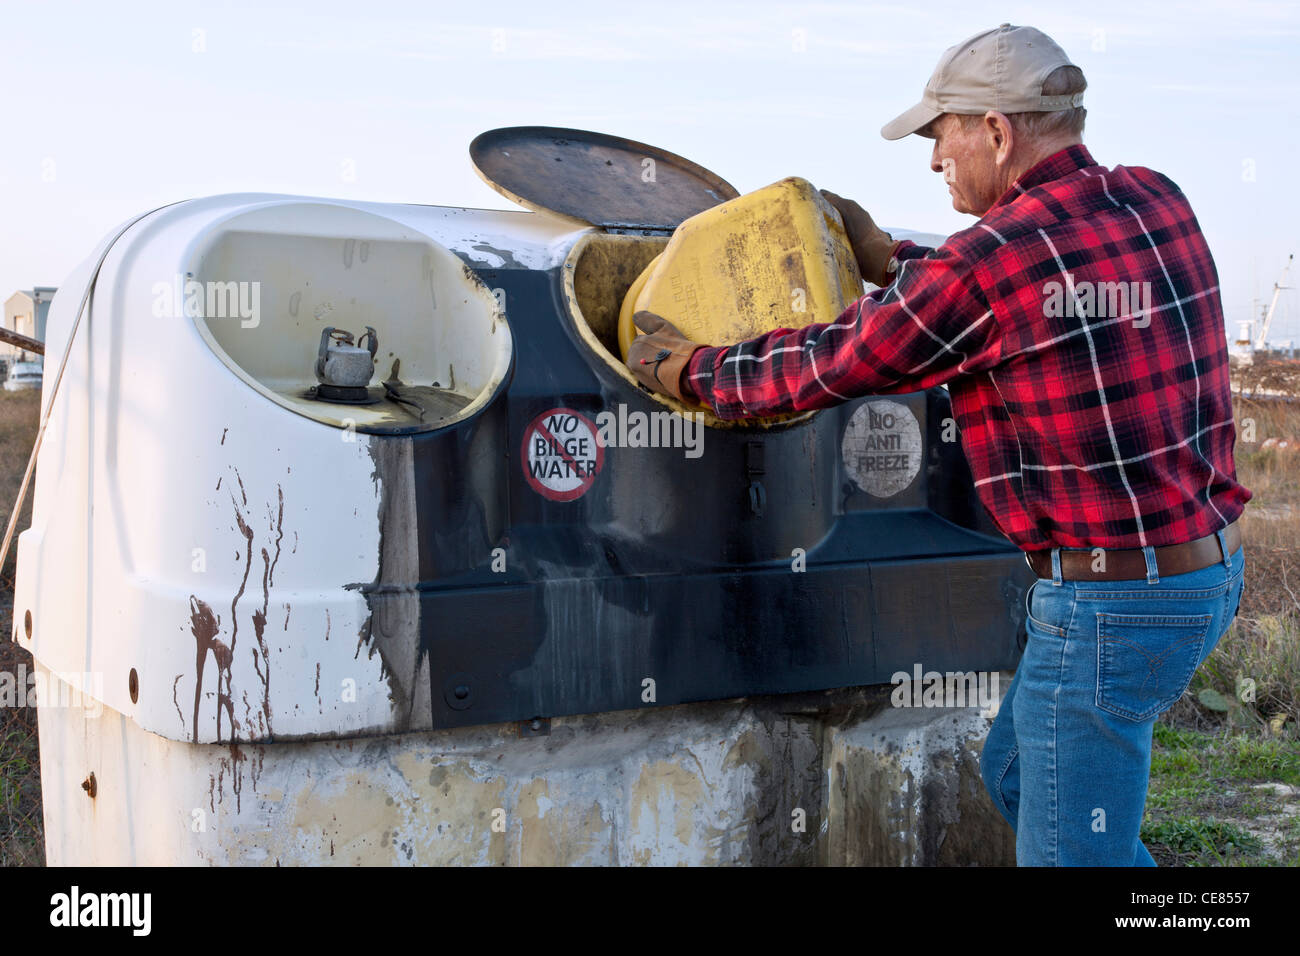 Boat owner depositing used engine oil, Collection Center. - Stock Image